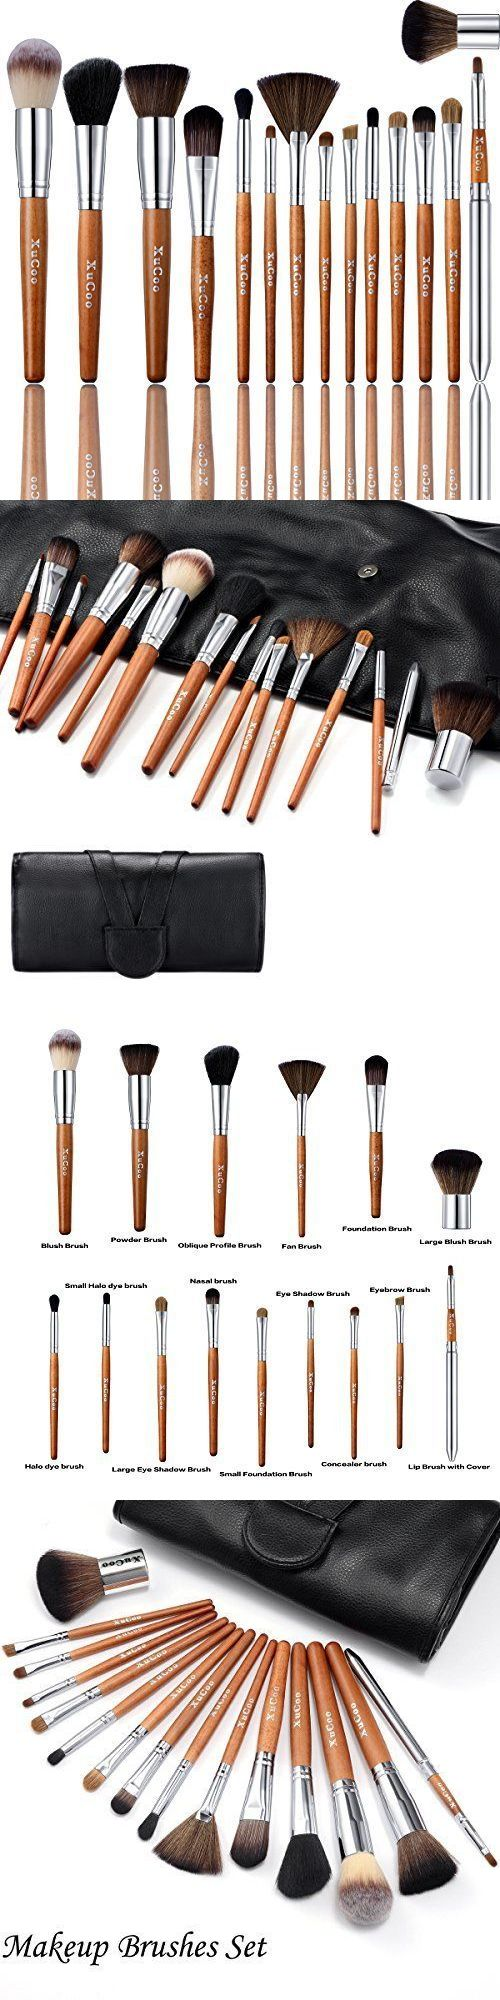 Beauty Makeup: 15 Pcs Professional Makeup Brushes Set Foundation Contour Blending Eyeshadow New BUY IT NOW ONLY: $33.98